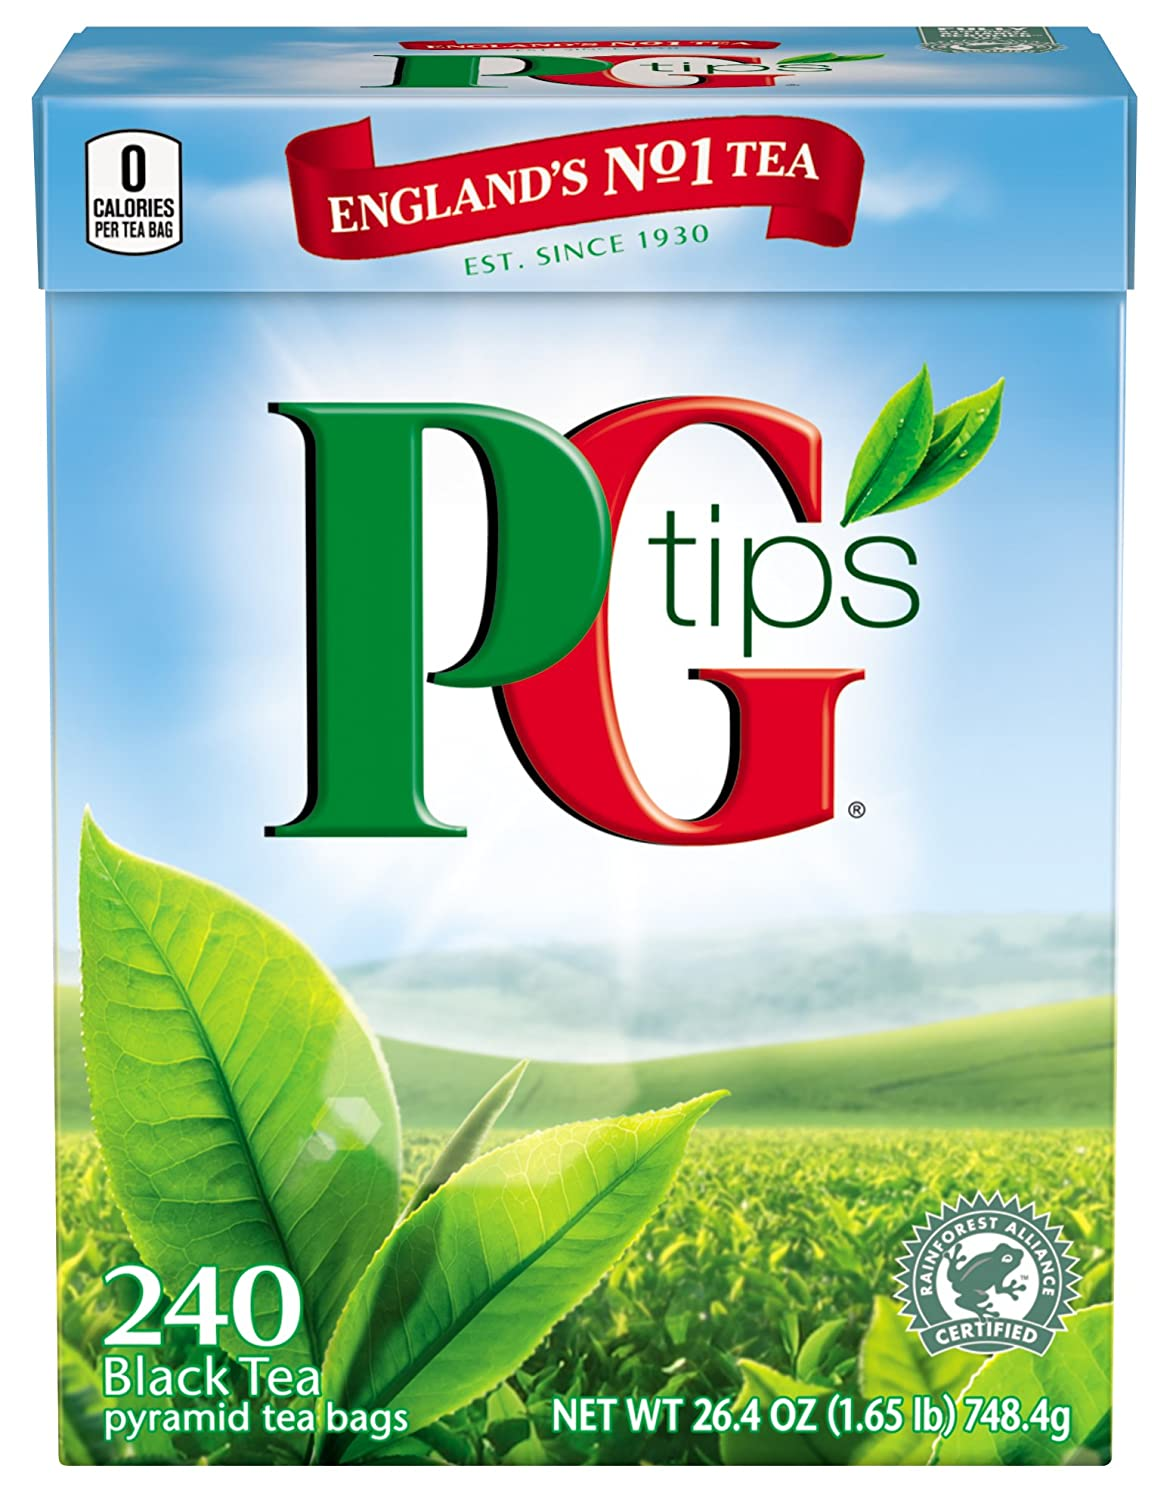 PG Tips Black Tea, Pyramid Tea Bags, 240-Count Box (Pack of 2) 10667803001053